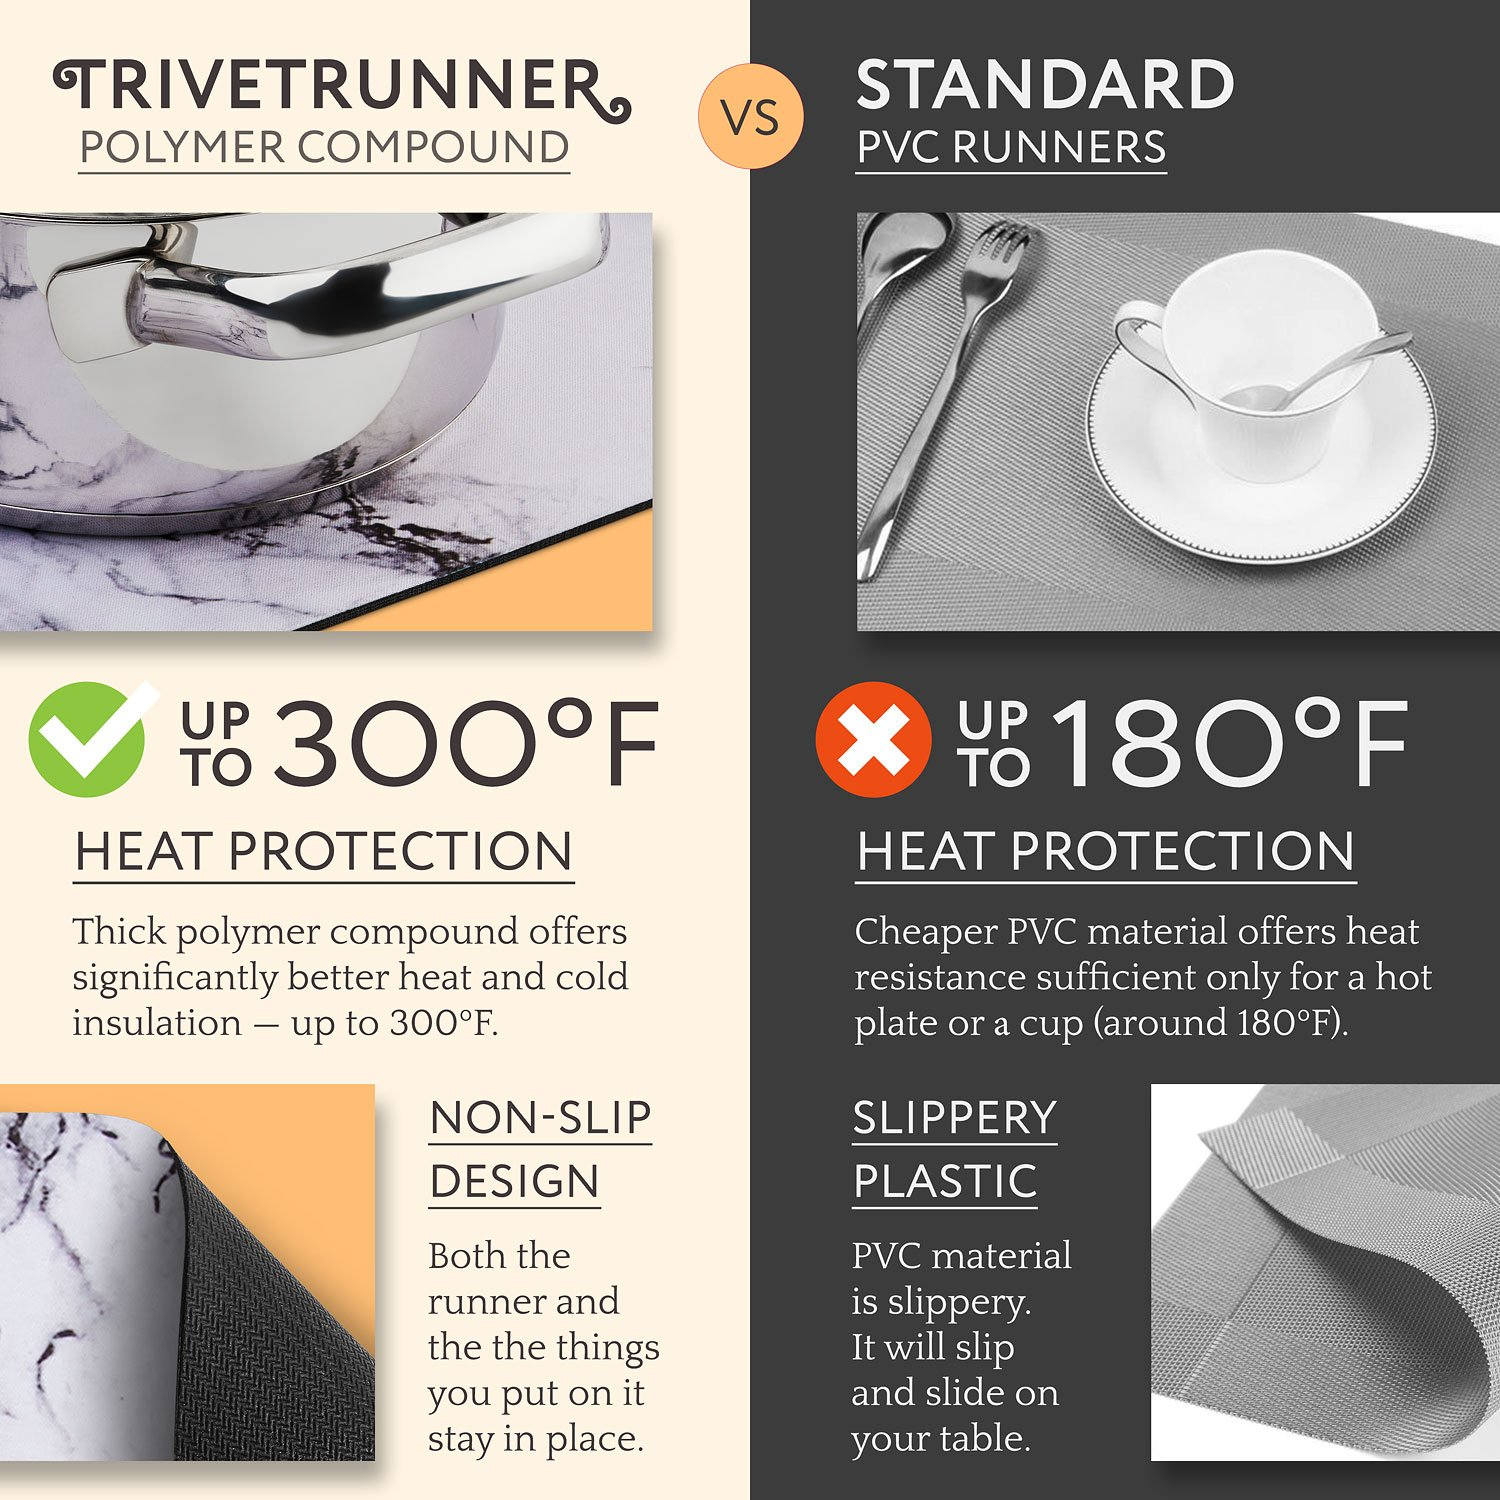 TRIVETRUNNER Decorative Trivet and Kitchen Table Runners Handles Heat Up to 300F, Anti Slip, Hand Washable, and Convenient for Hot Dishes and Pots,Hand Washable (White Marble) by TRIVETRUNNER (Image #9)